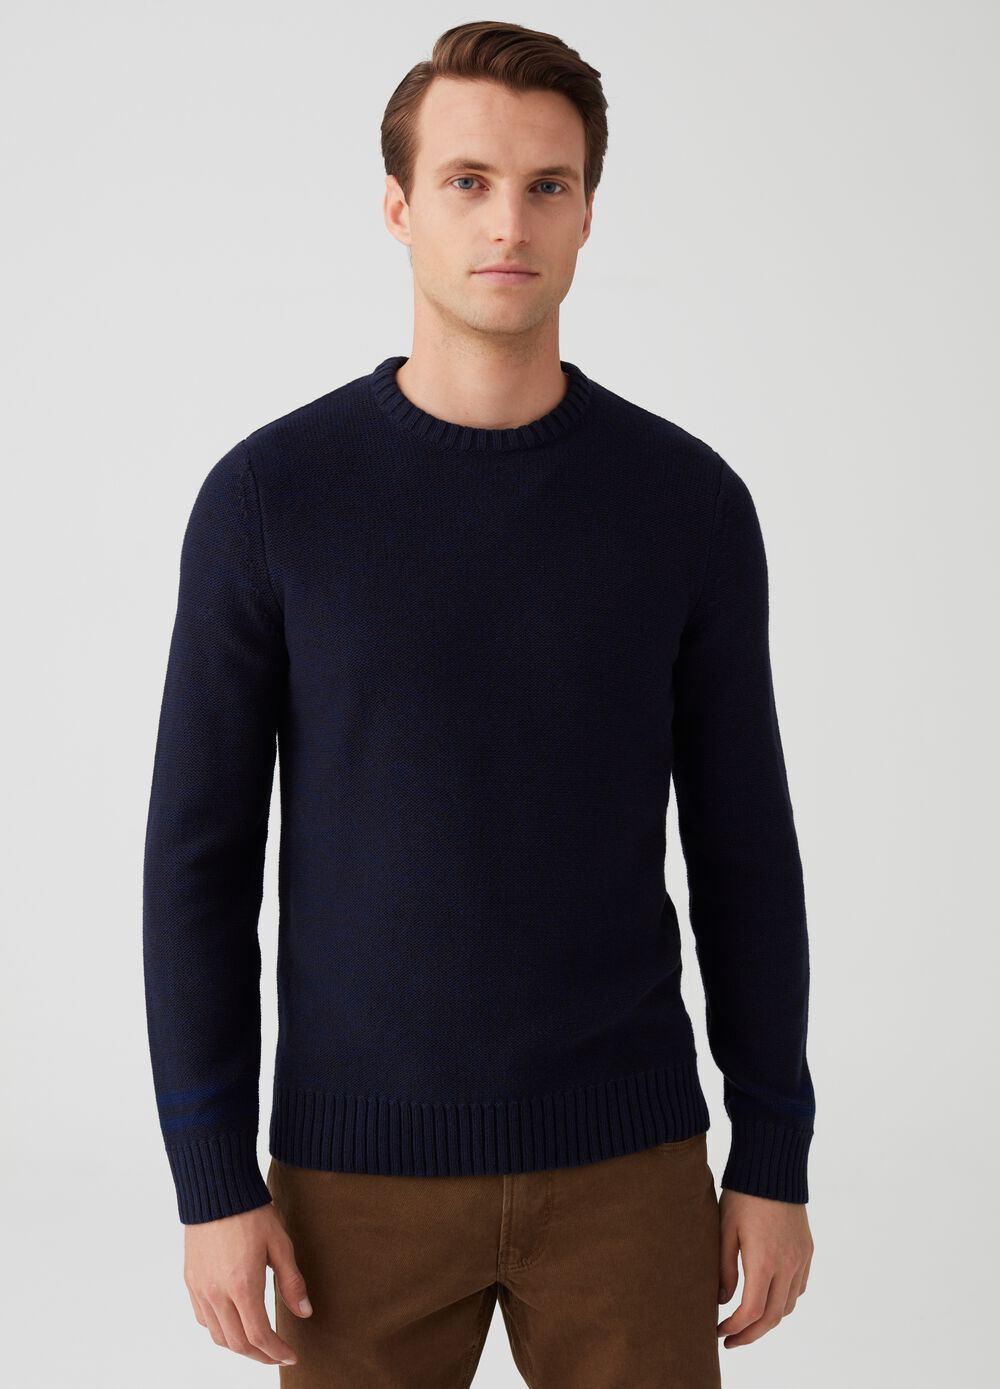 Knitted pullover with round neck and ribbing